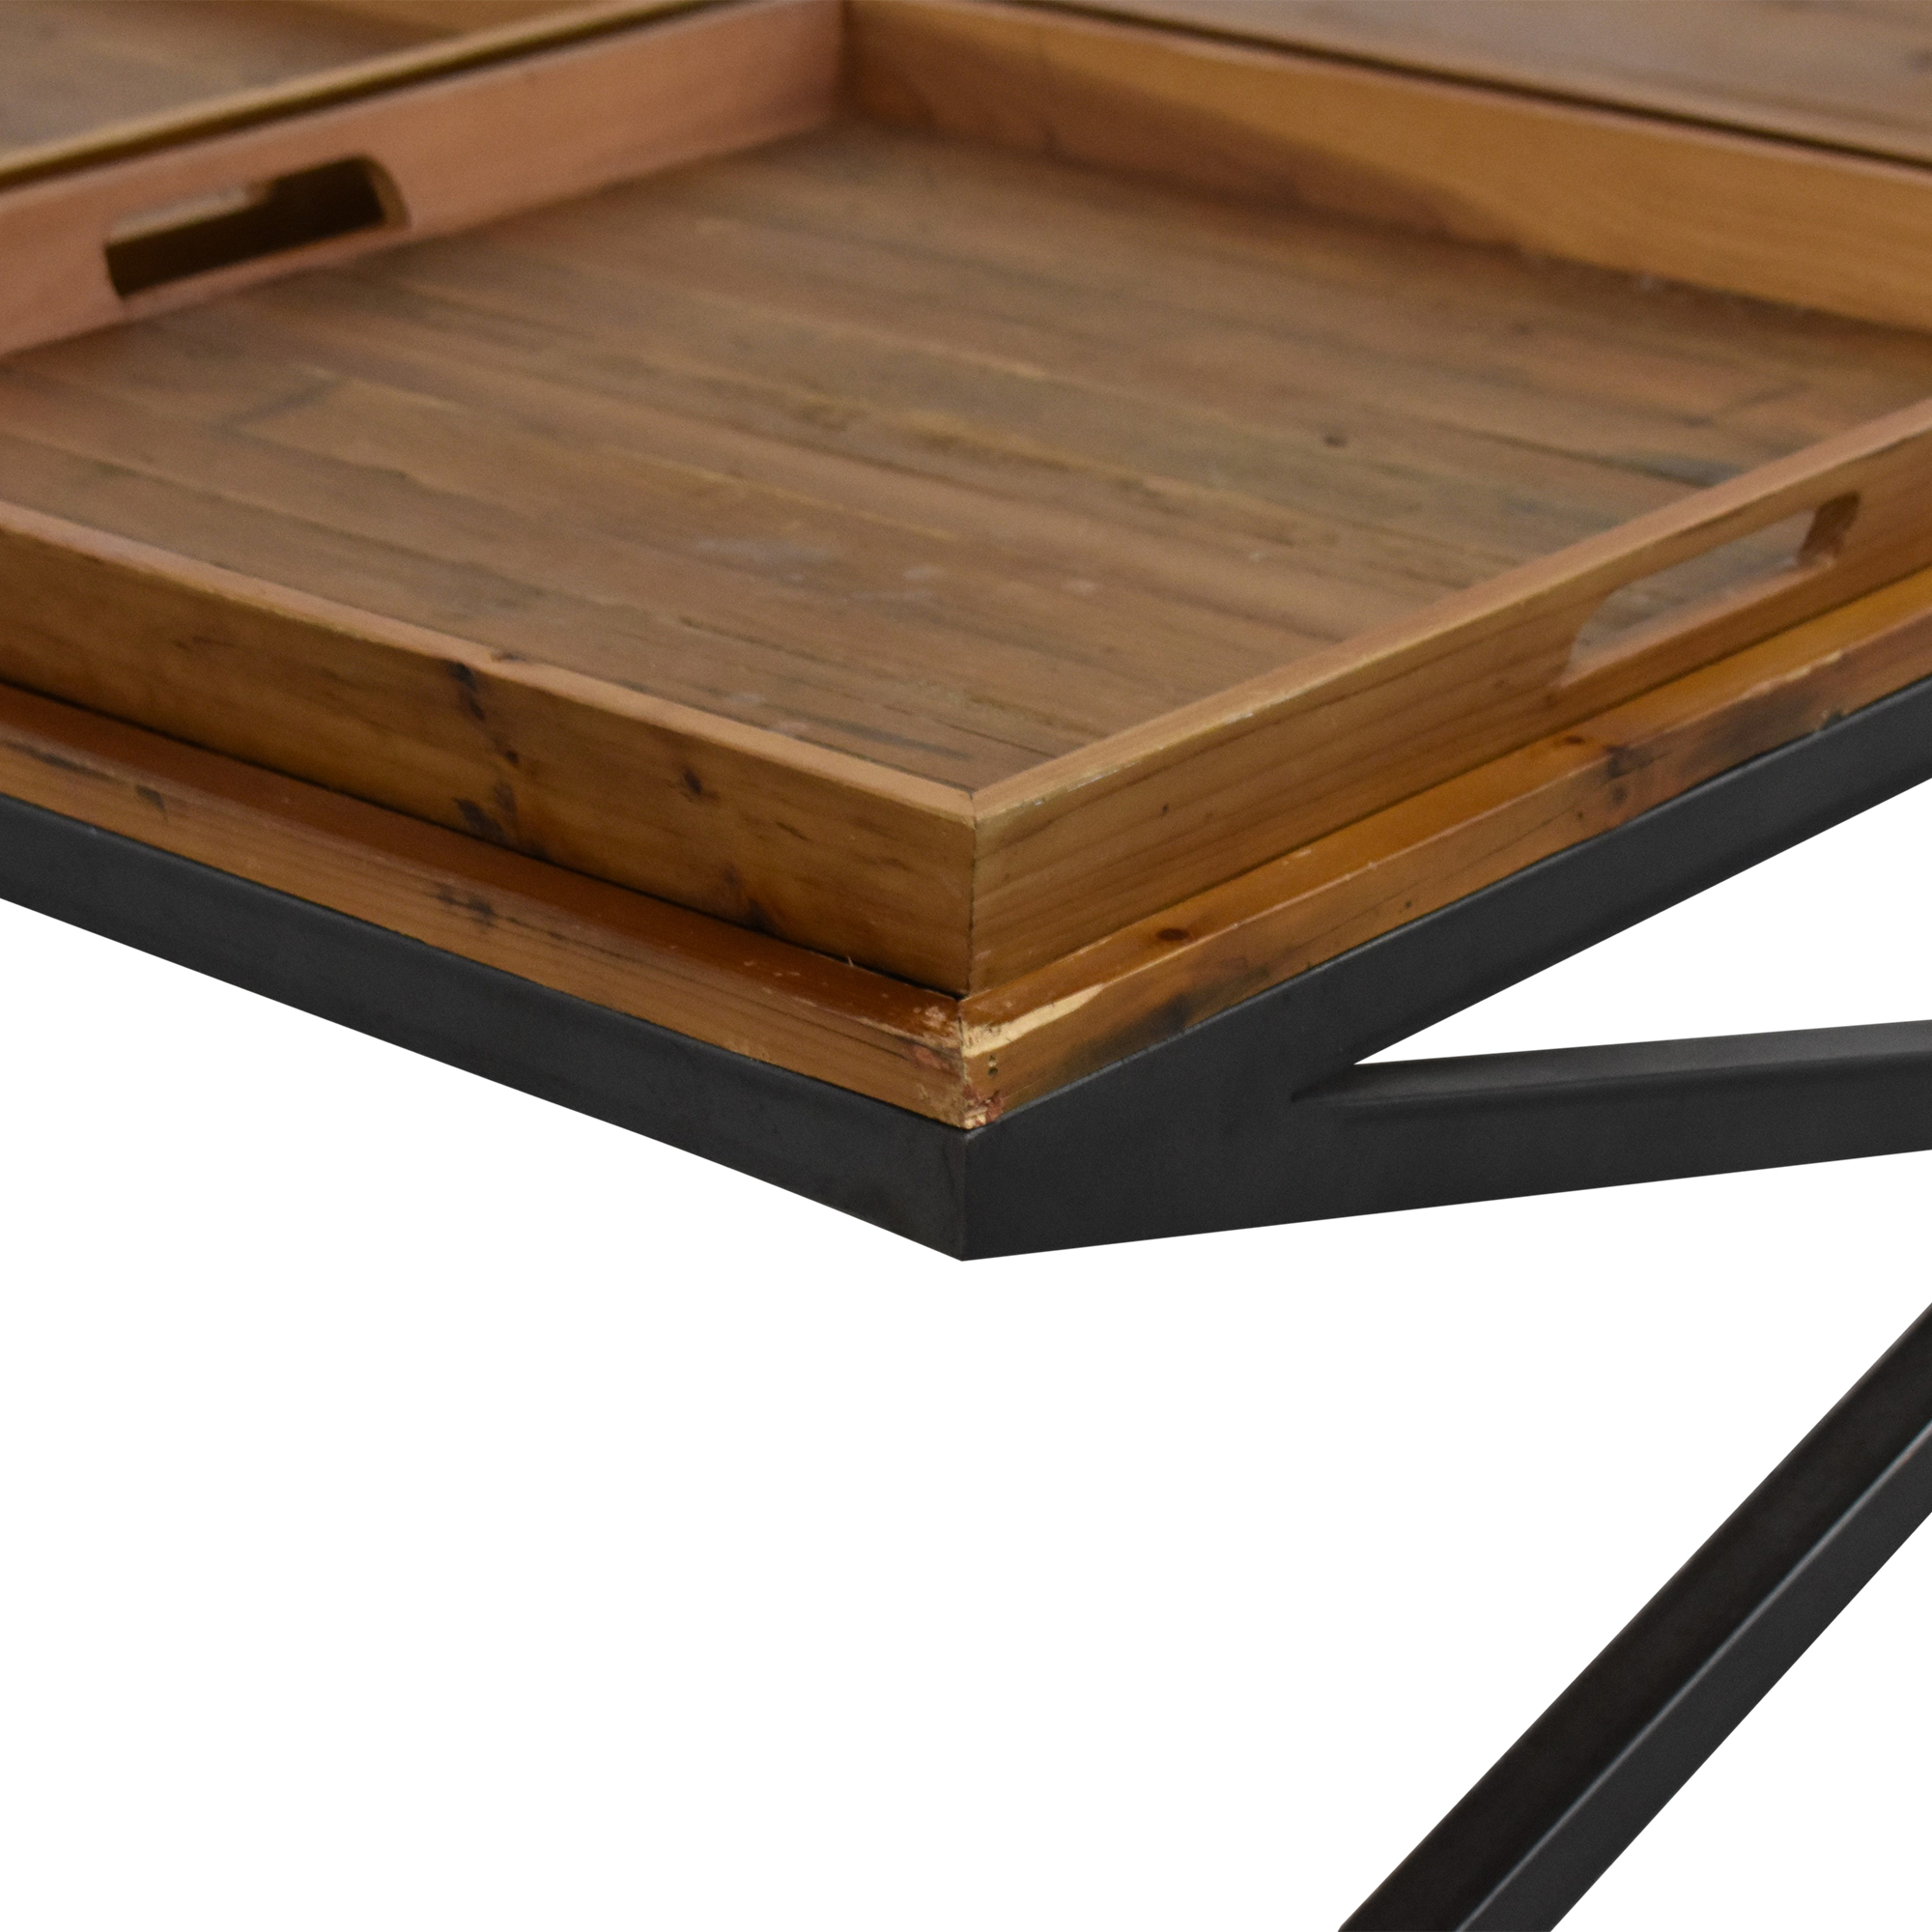 Four Hands Four Hands Jax Square Coffee Table for sale